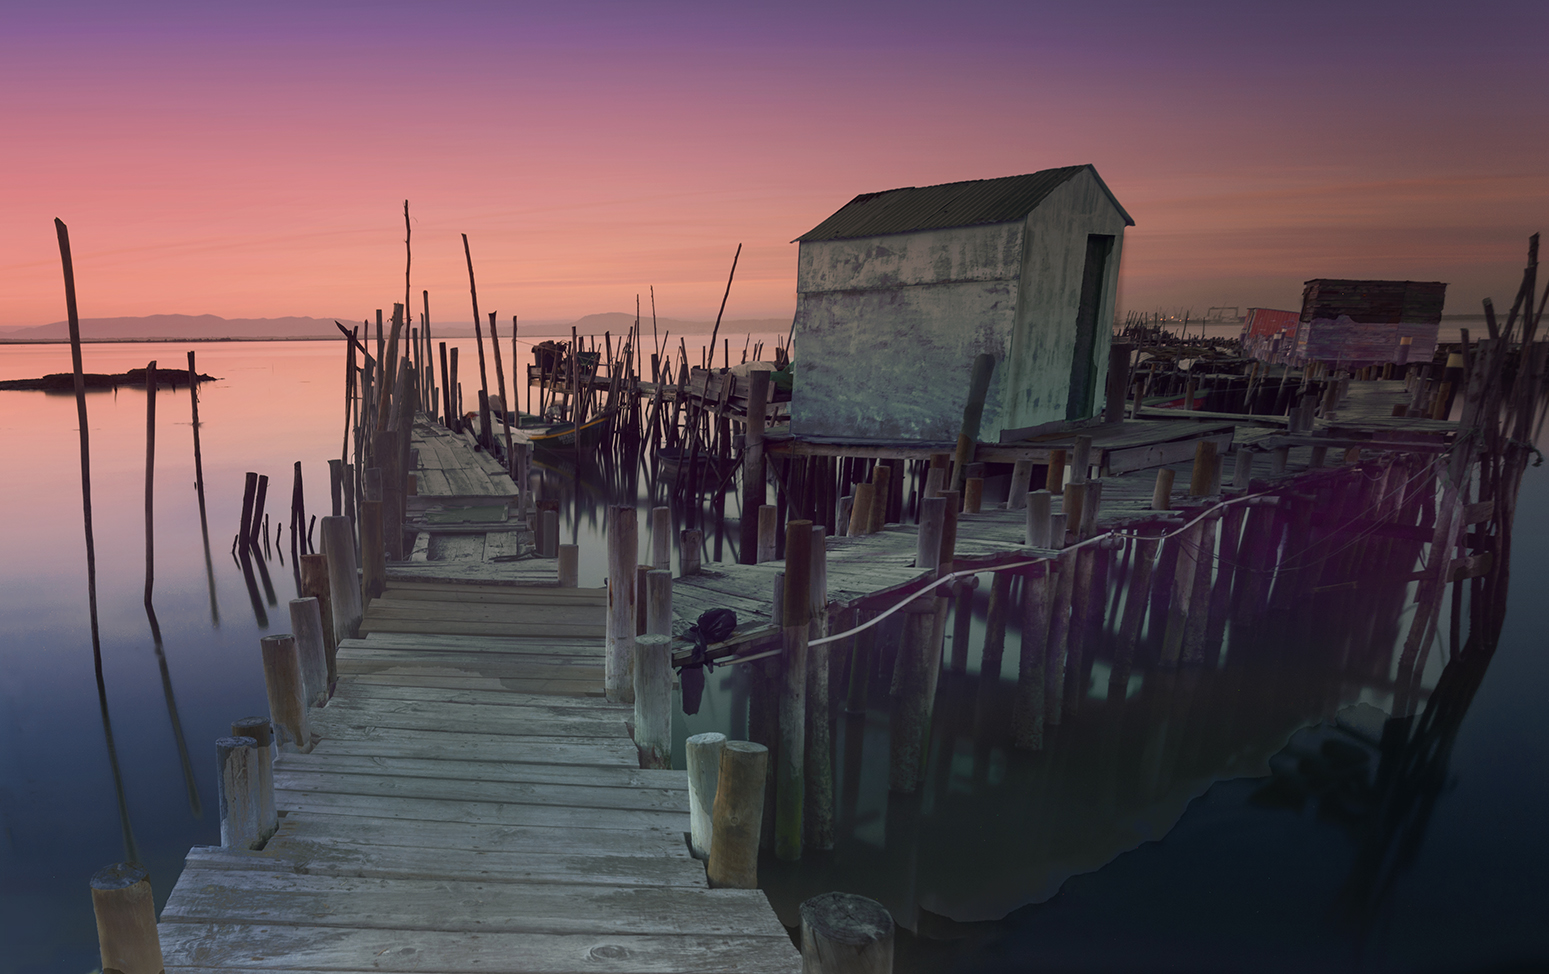 Carrasqueira at sunset, Portugal